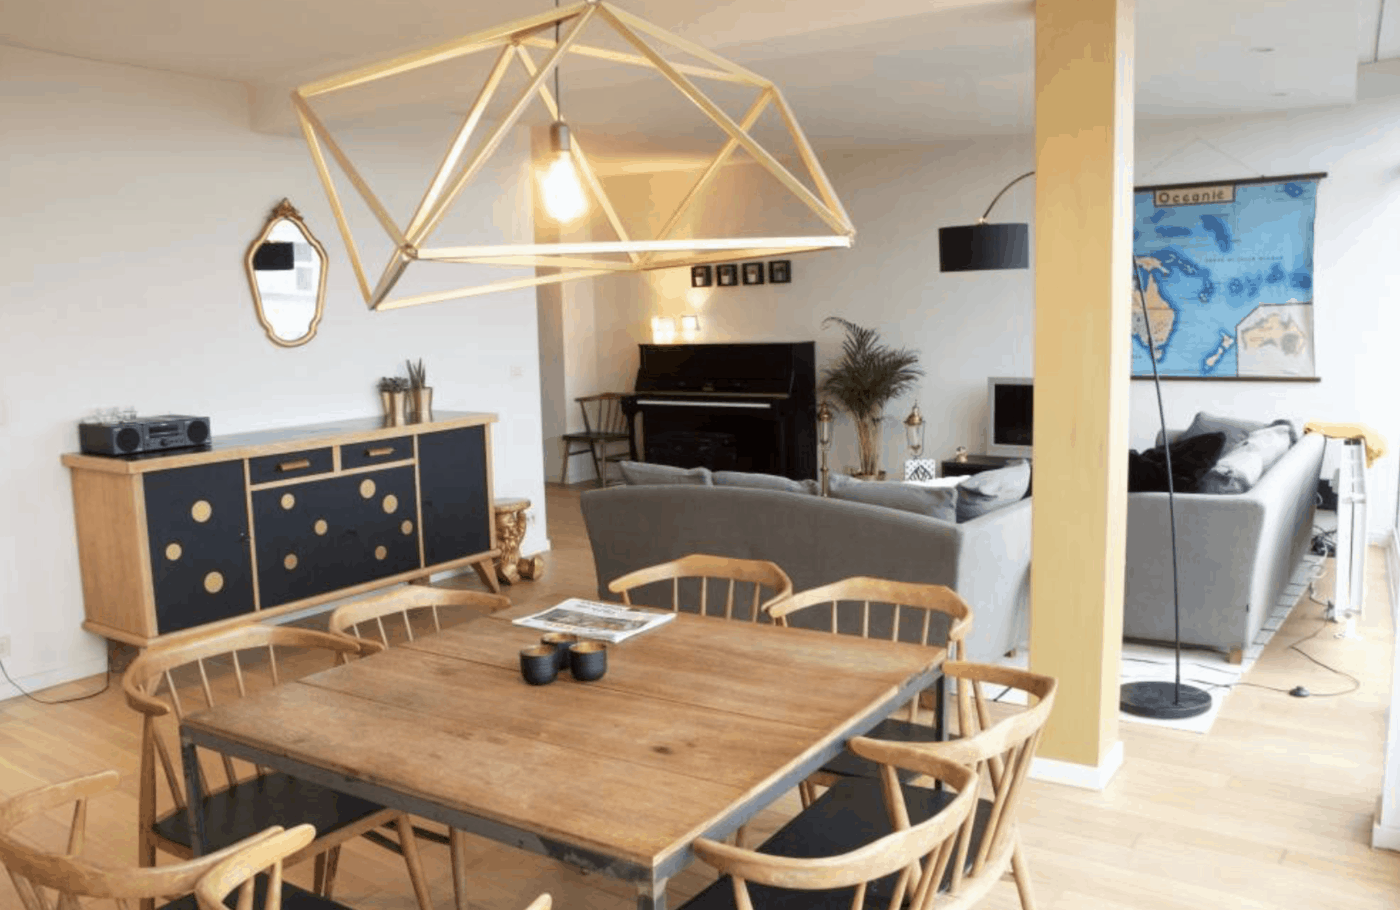 Statie - Expat apartment with two terraces in Antwerp